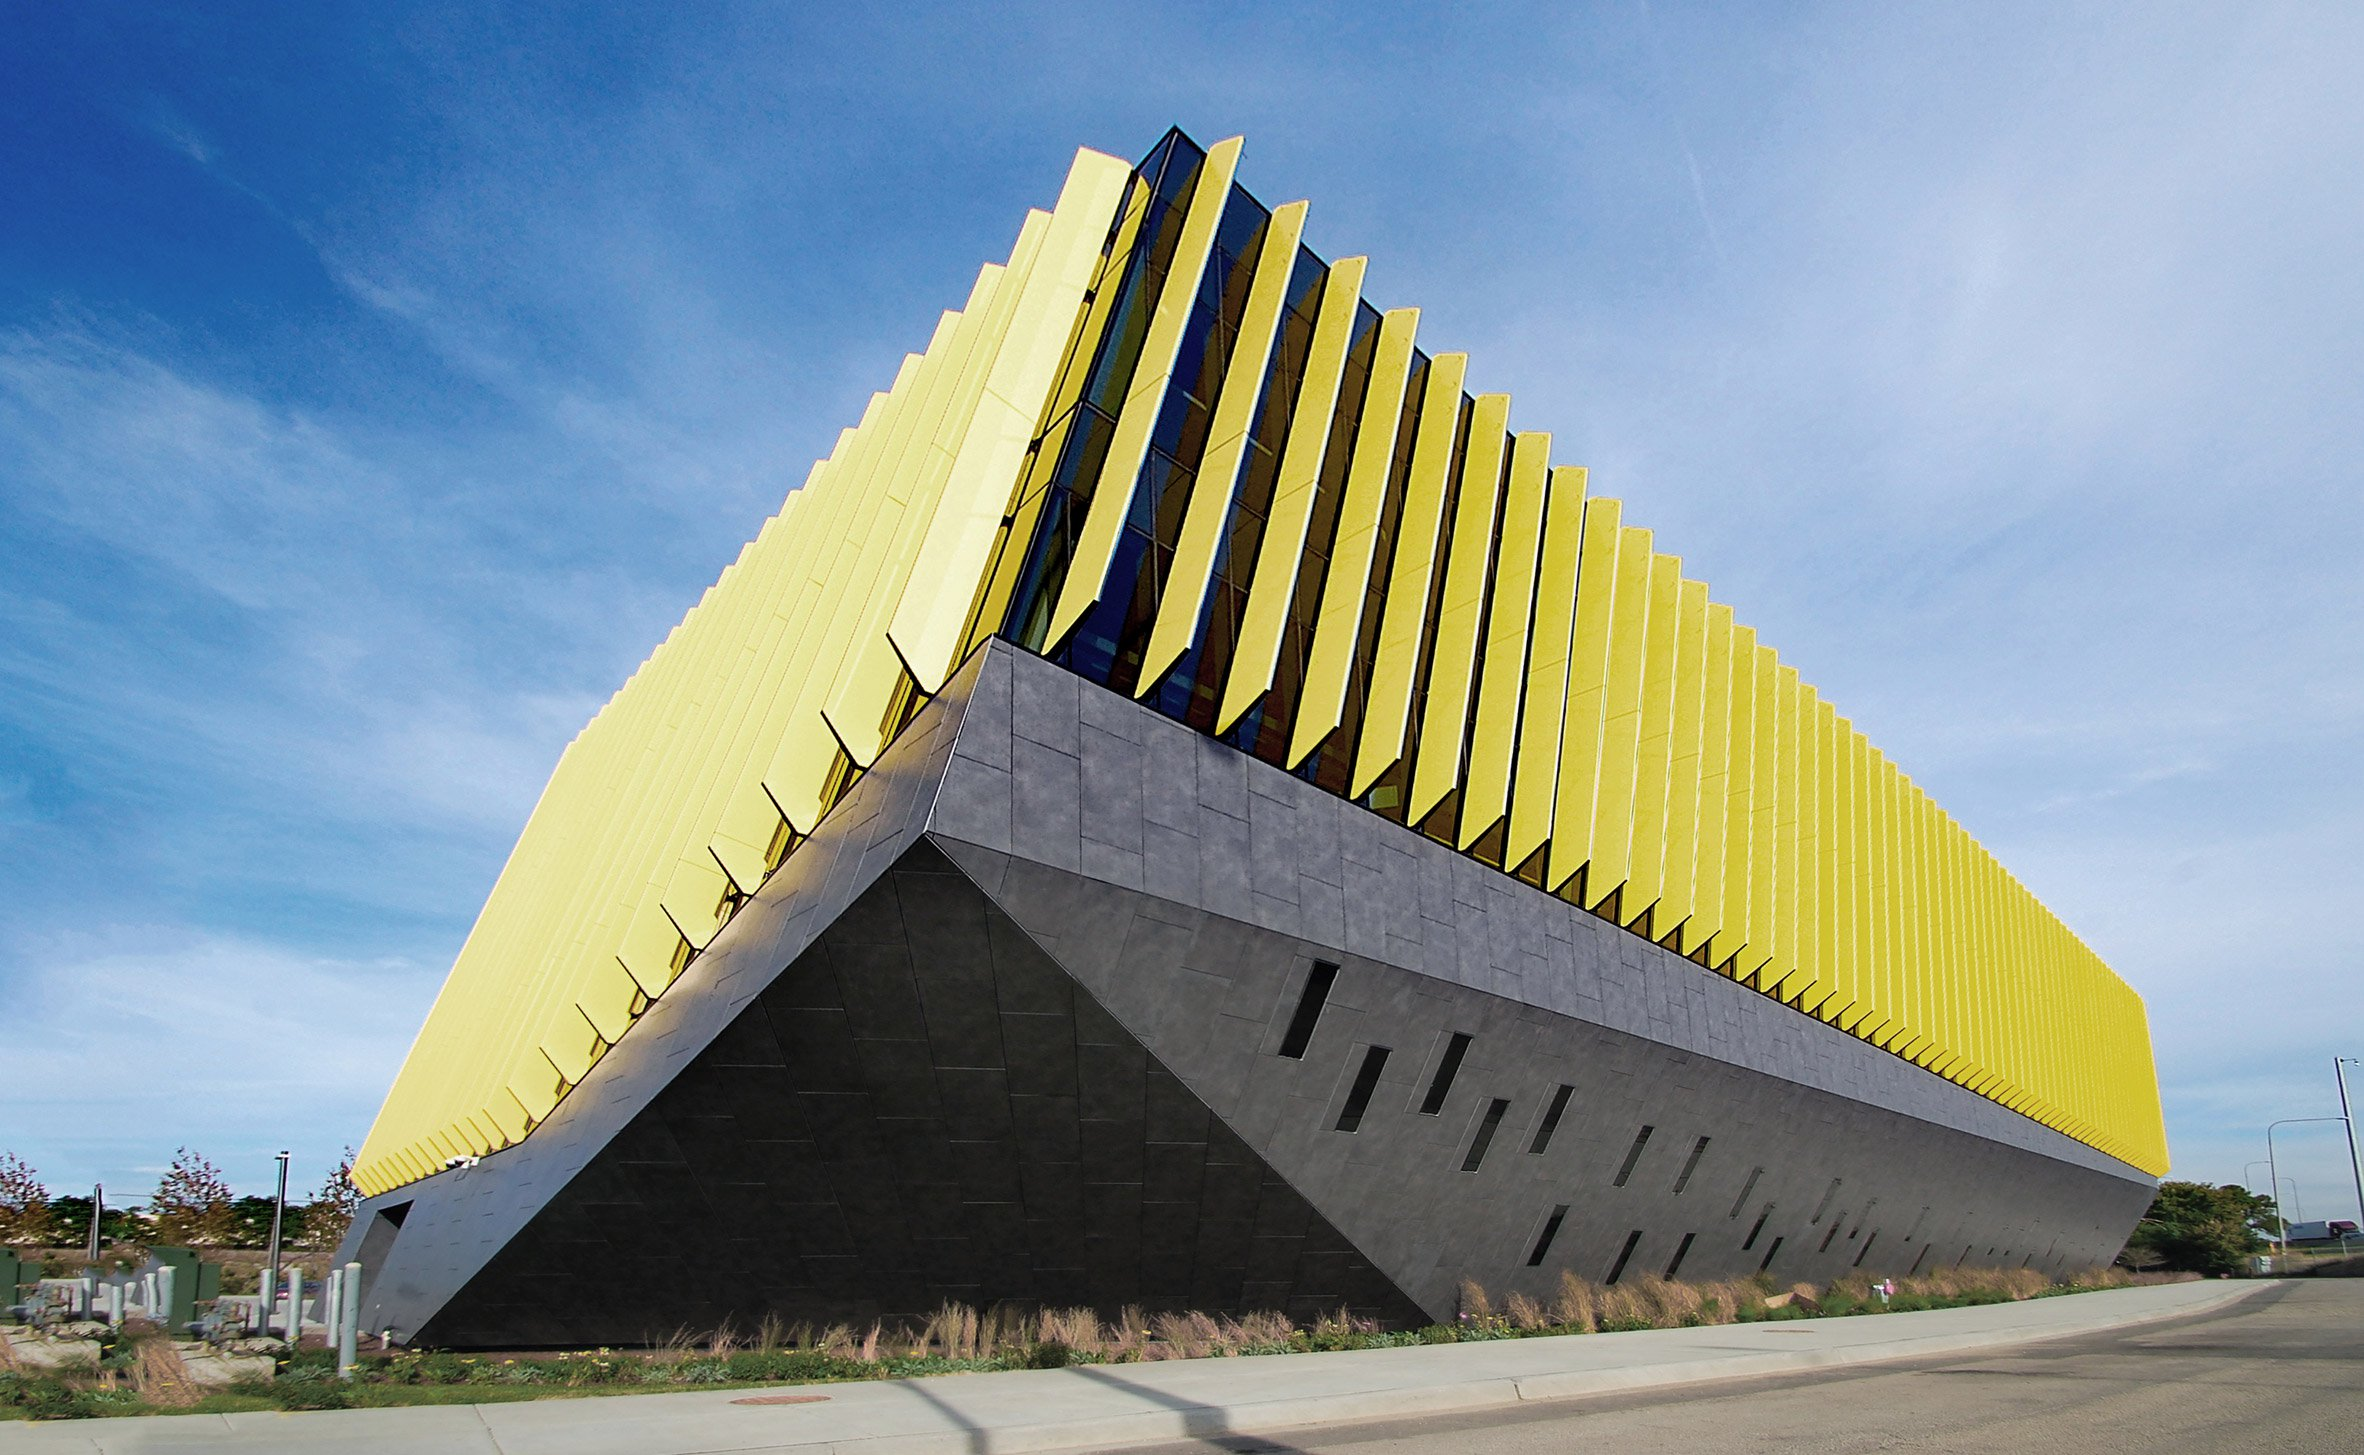 Blue and yellow fins wrap sculptural academic building in Chicago by JGMA